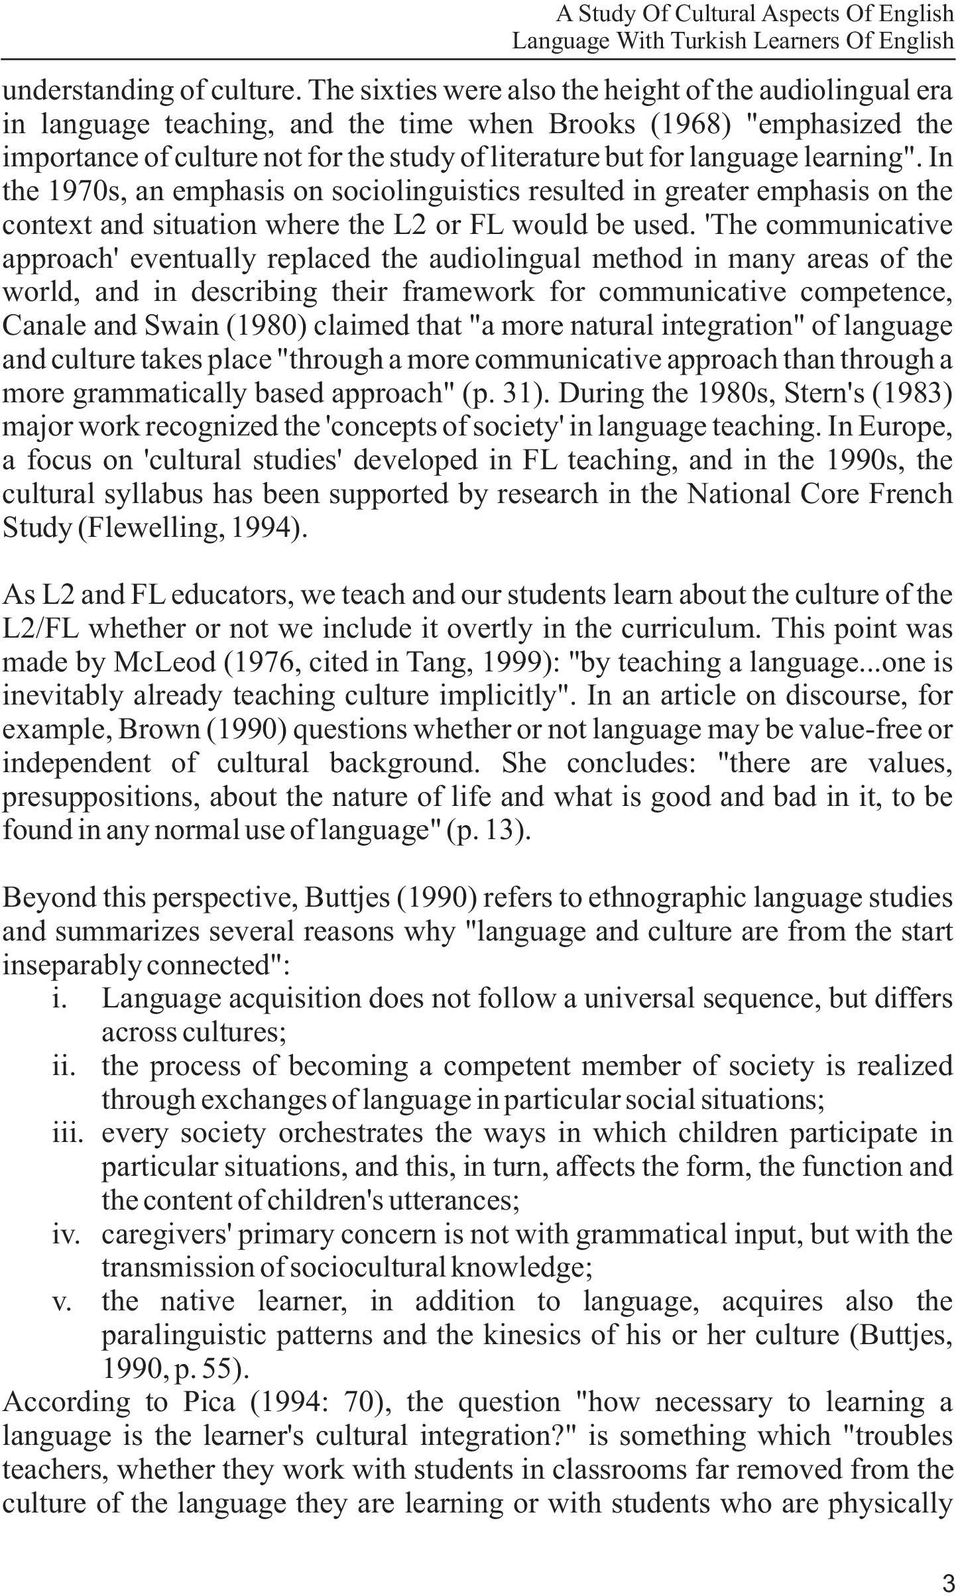 "learning"". In the 1970s, an emphasis on sociolinguistics resulted in greater emphasis on the context and situation where the L or FL would be used."